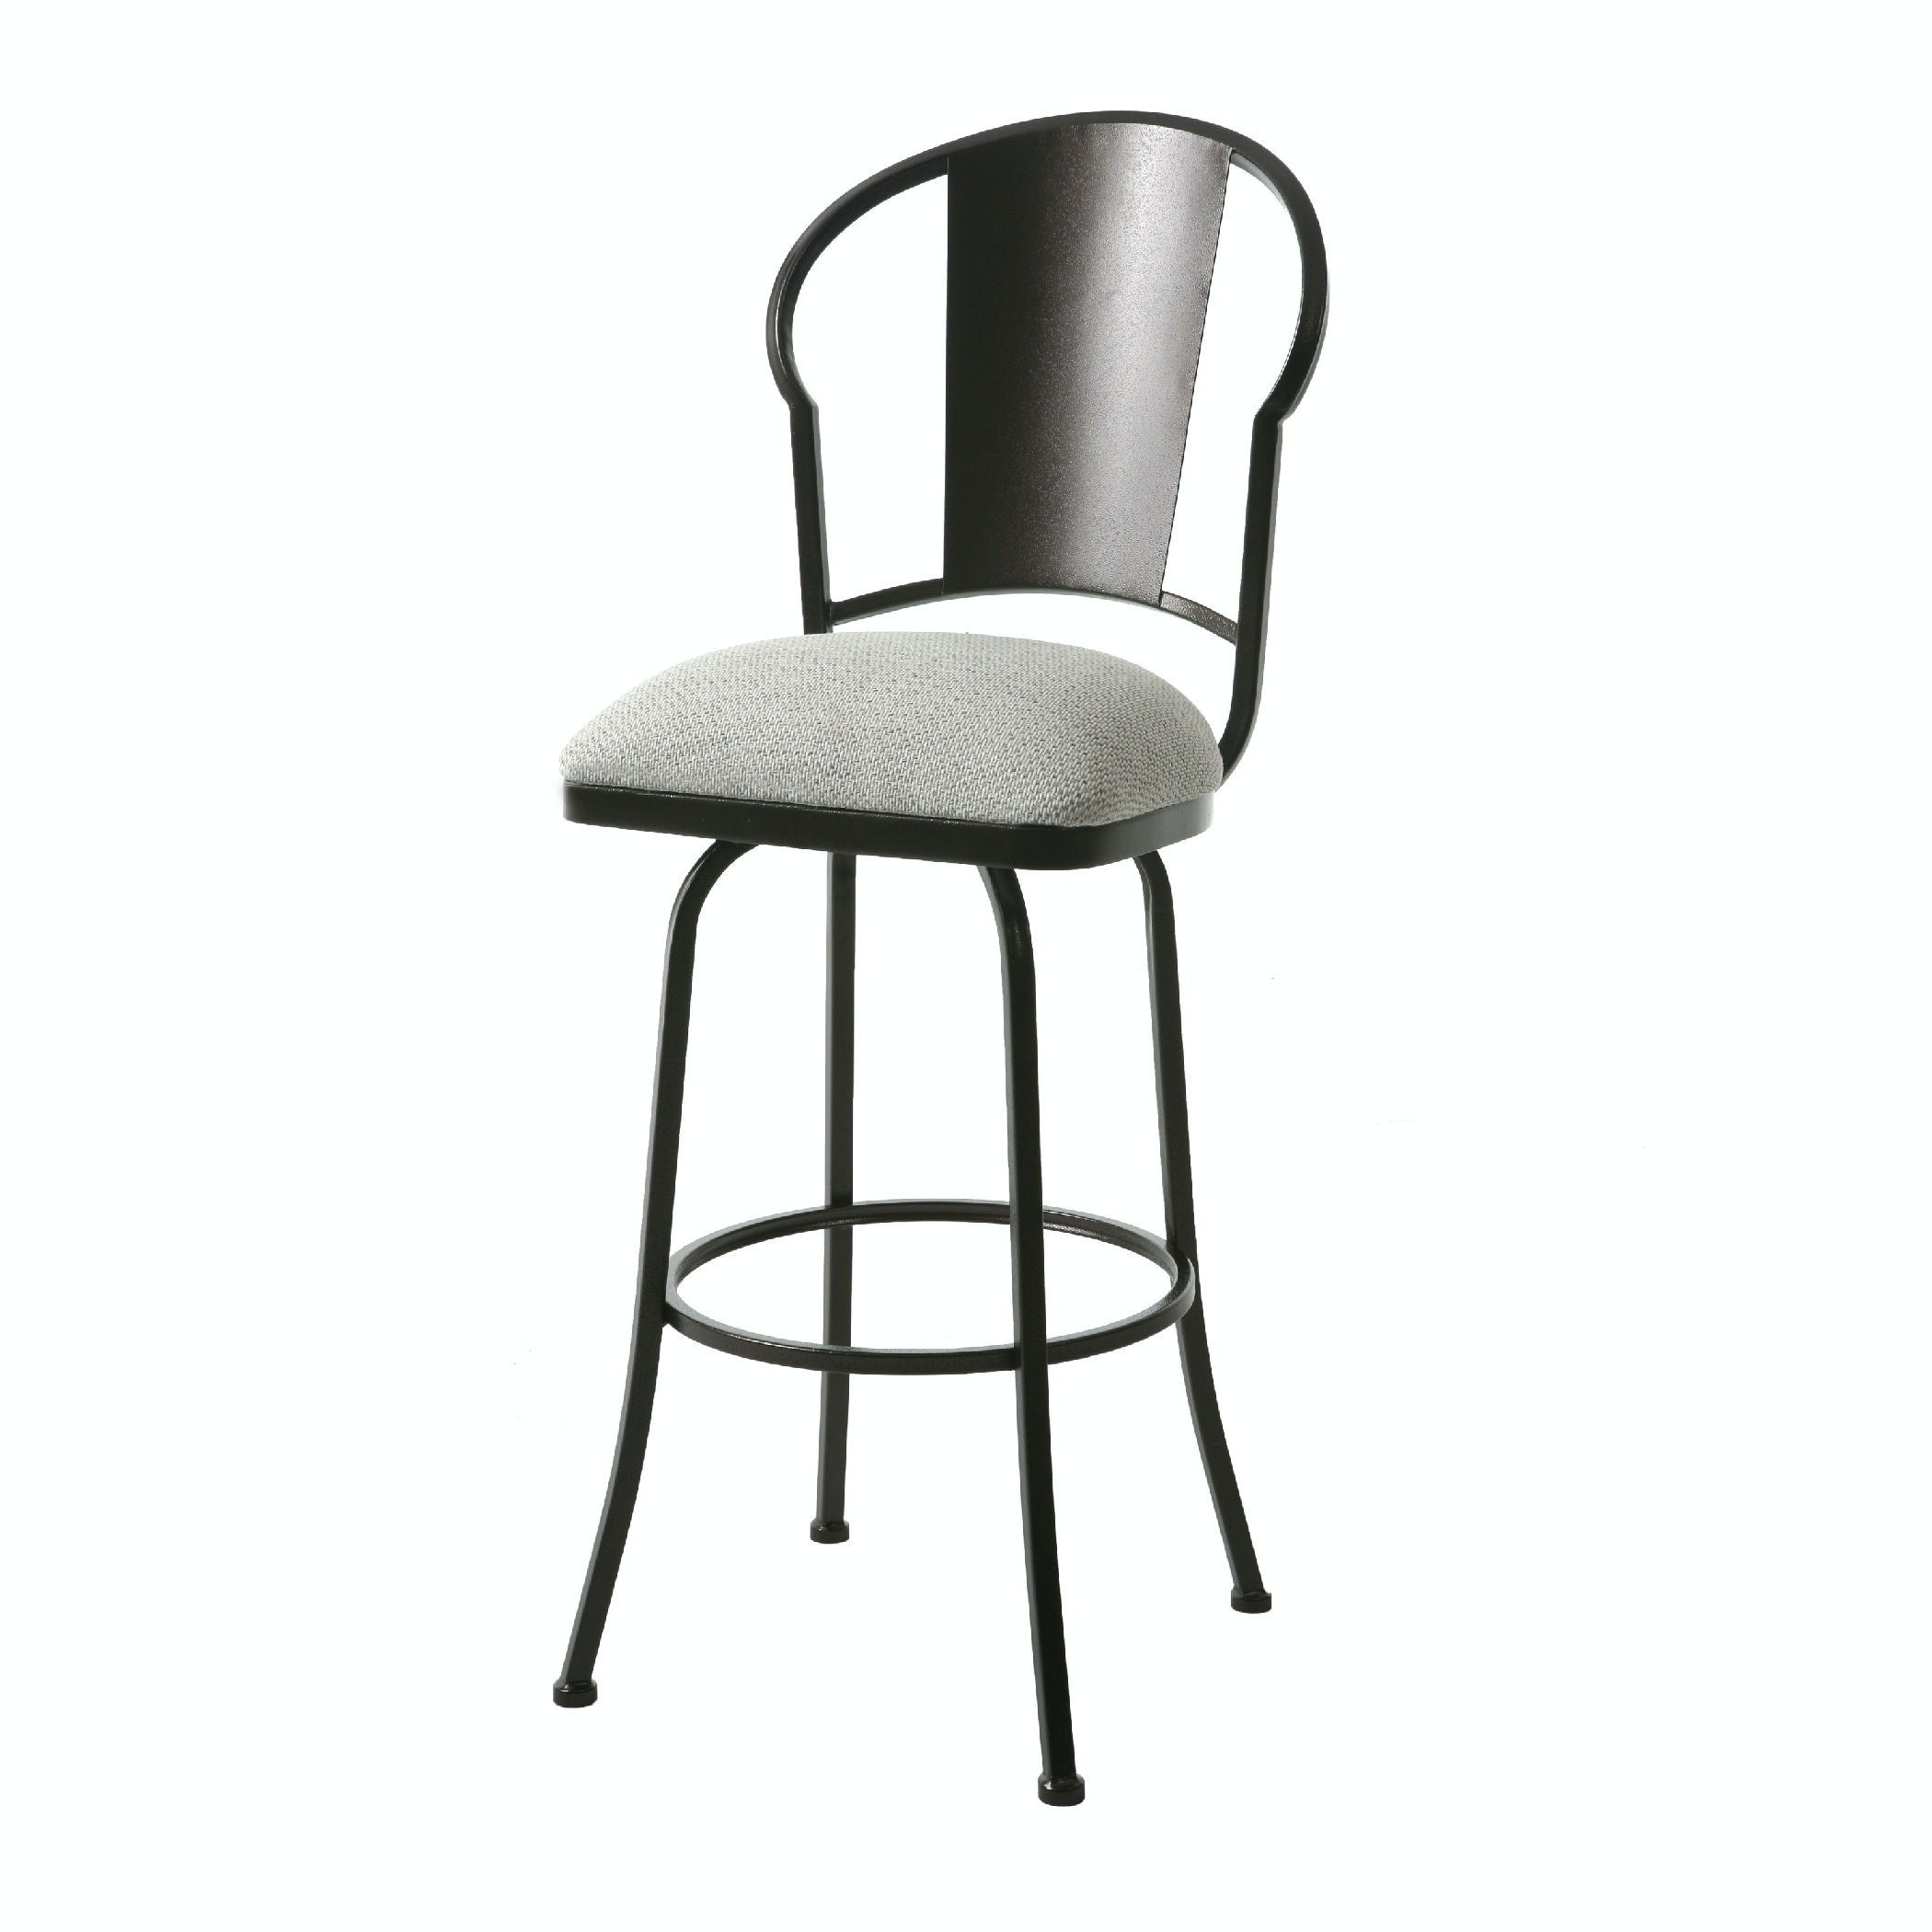 Pastel Furniture Ivette Swivel Barstool IV 249 26